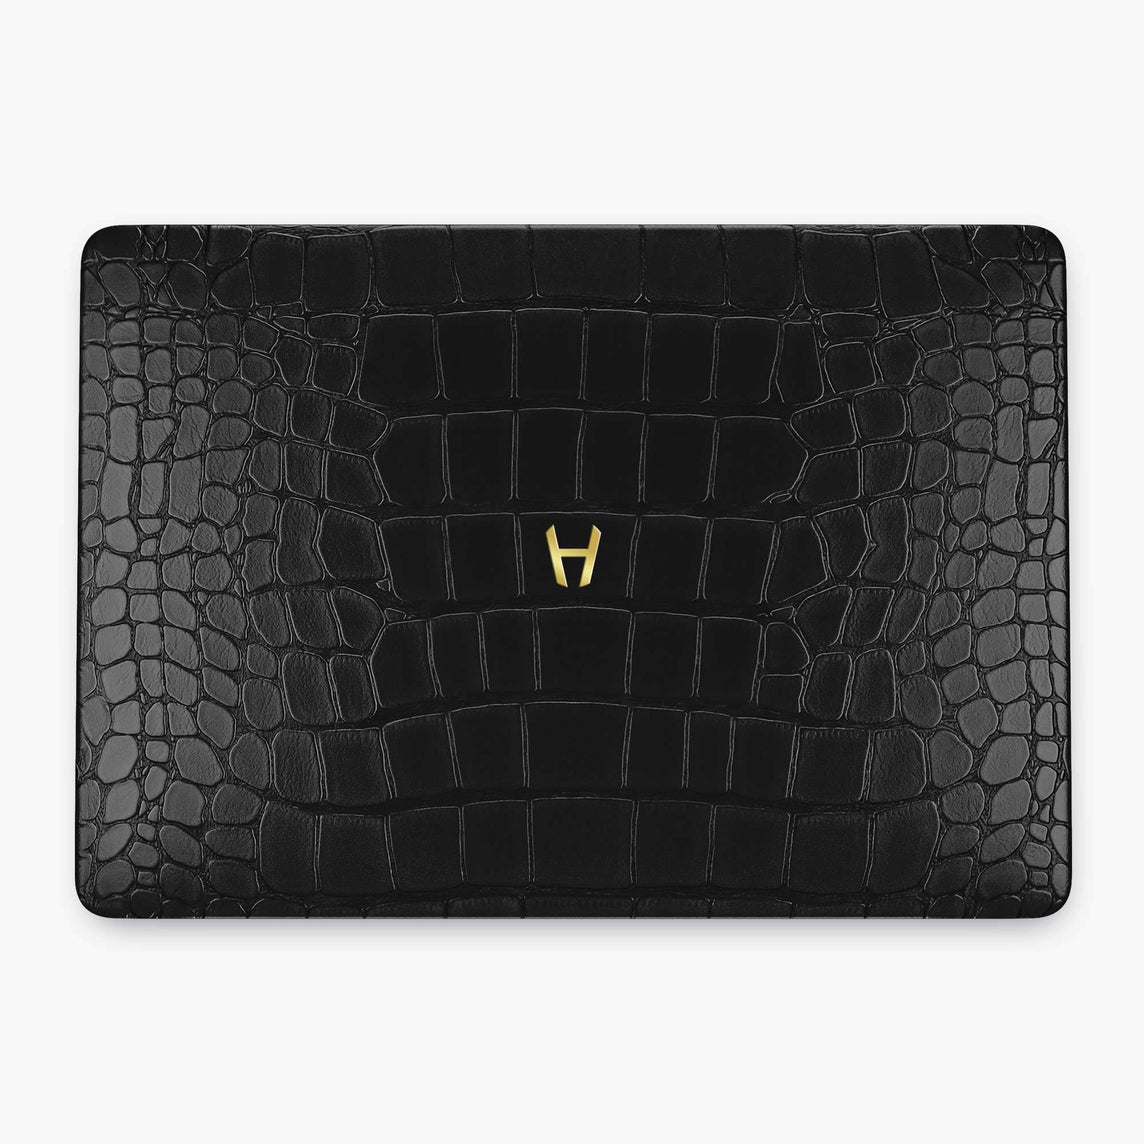 Alligator Macbook Case Apple Mac Book 15'' Pro | Black - Yellow Gold